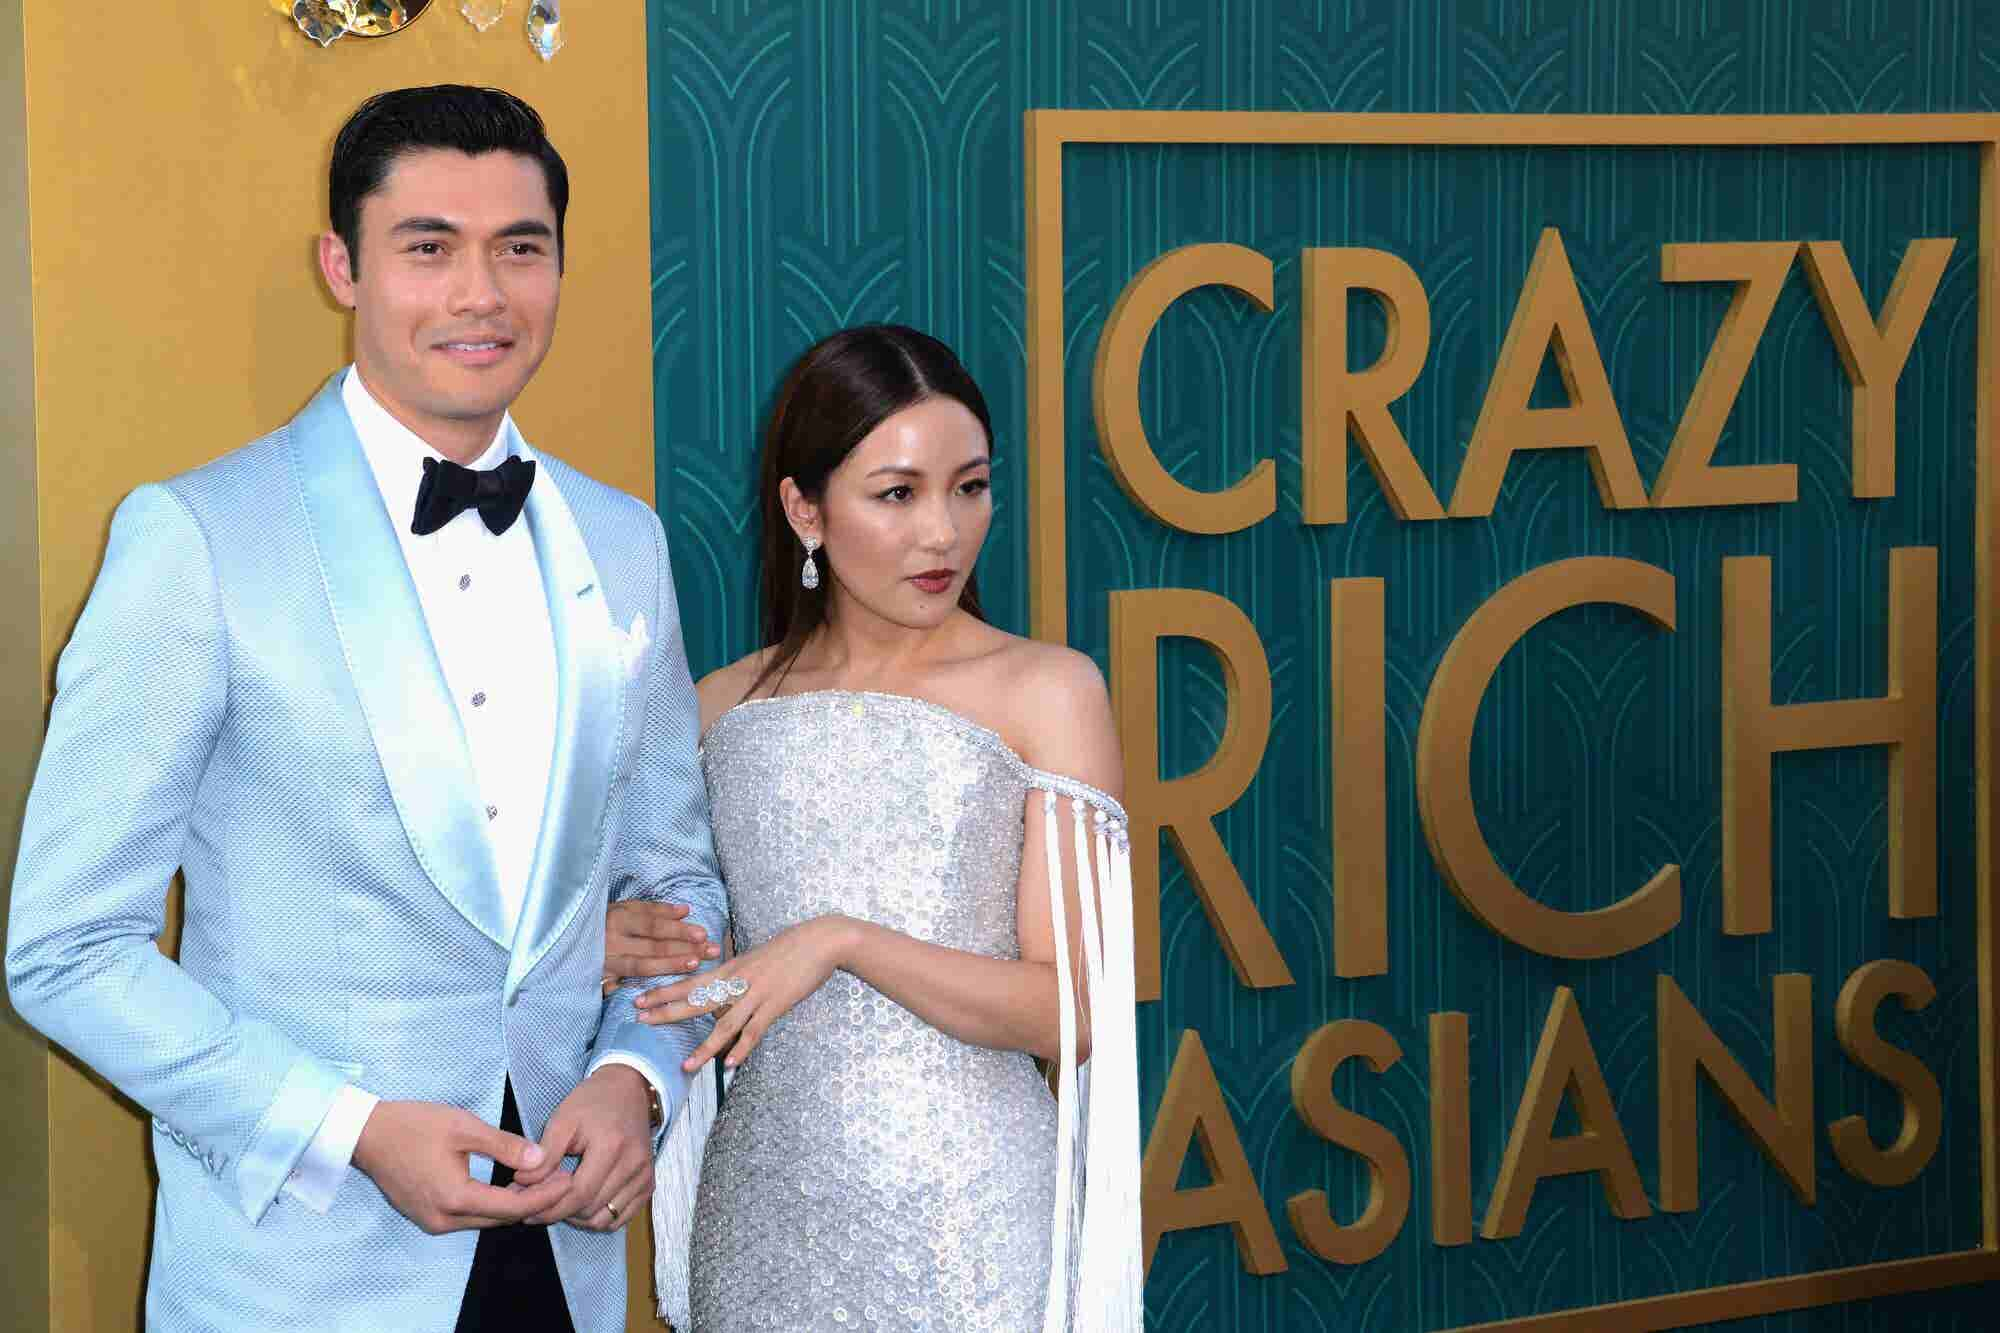 'Crazy Rich Asians' Makes Crazy Box Office History. 3 Things to Know Today.